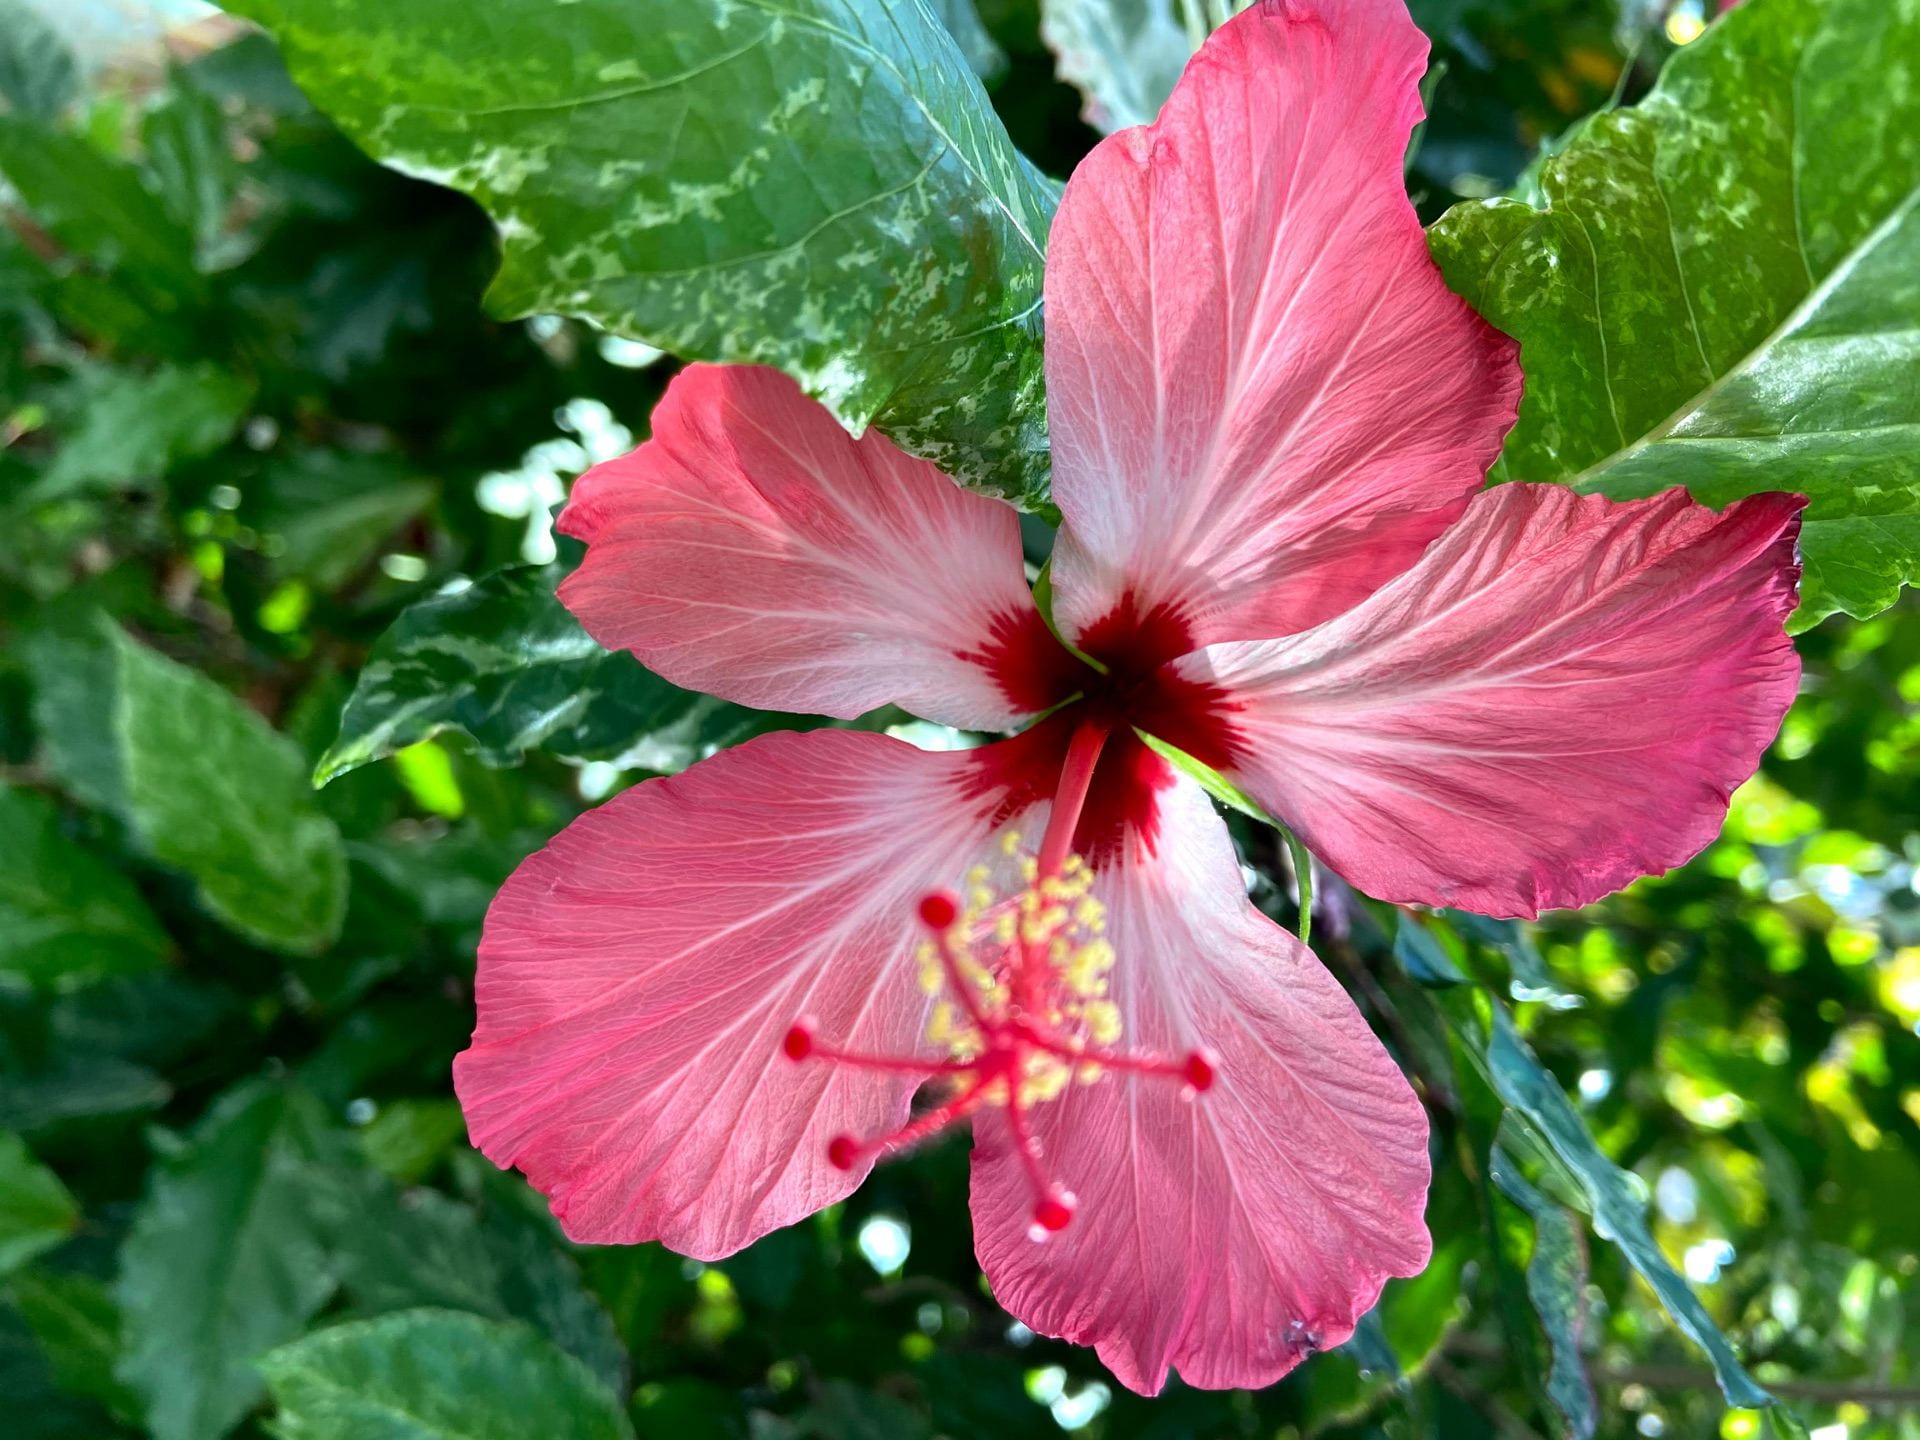 The bold pink flowers and variegated leaves of Hibiscus rosa-sinensis stand out.